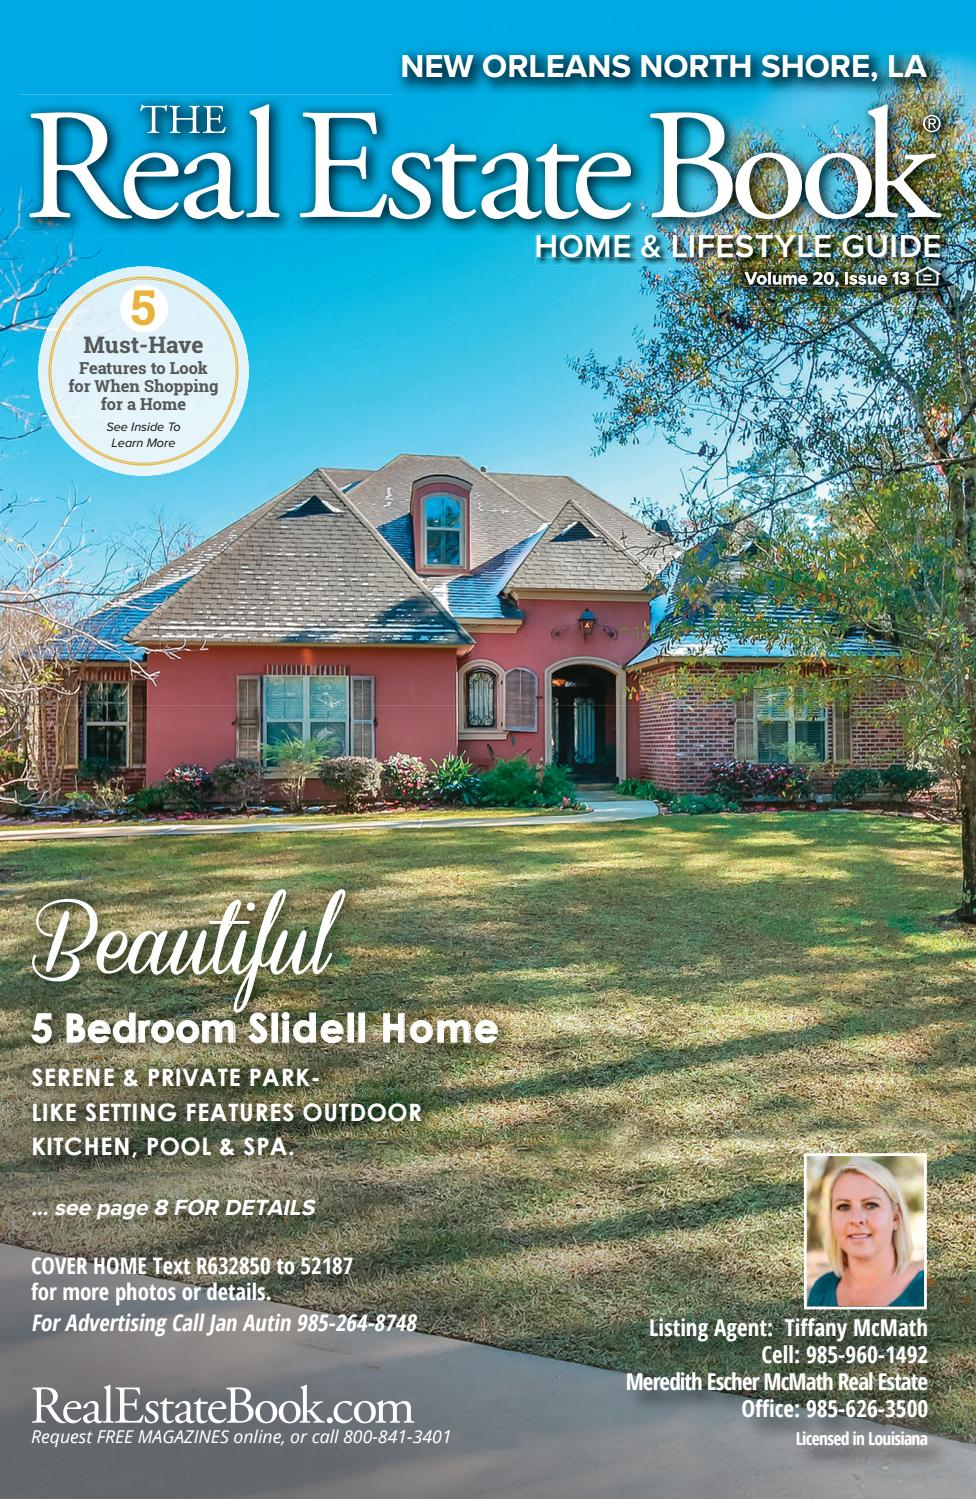 The Real Estate Book Home & Lifestyle Guide of New Orleans ...